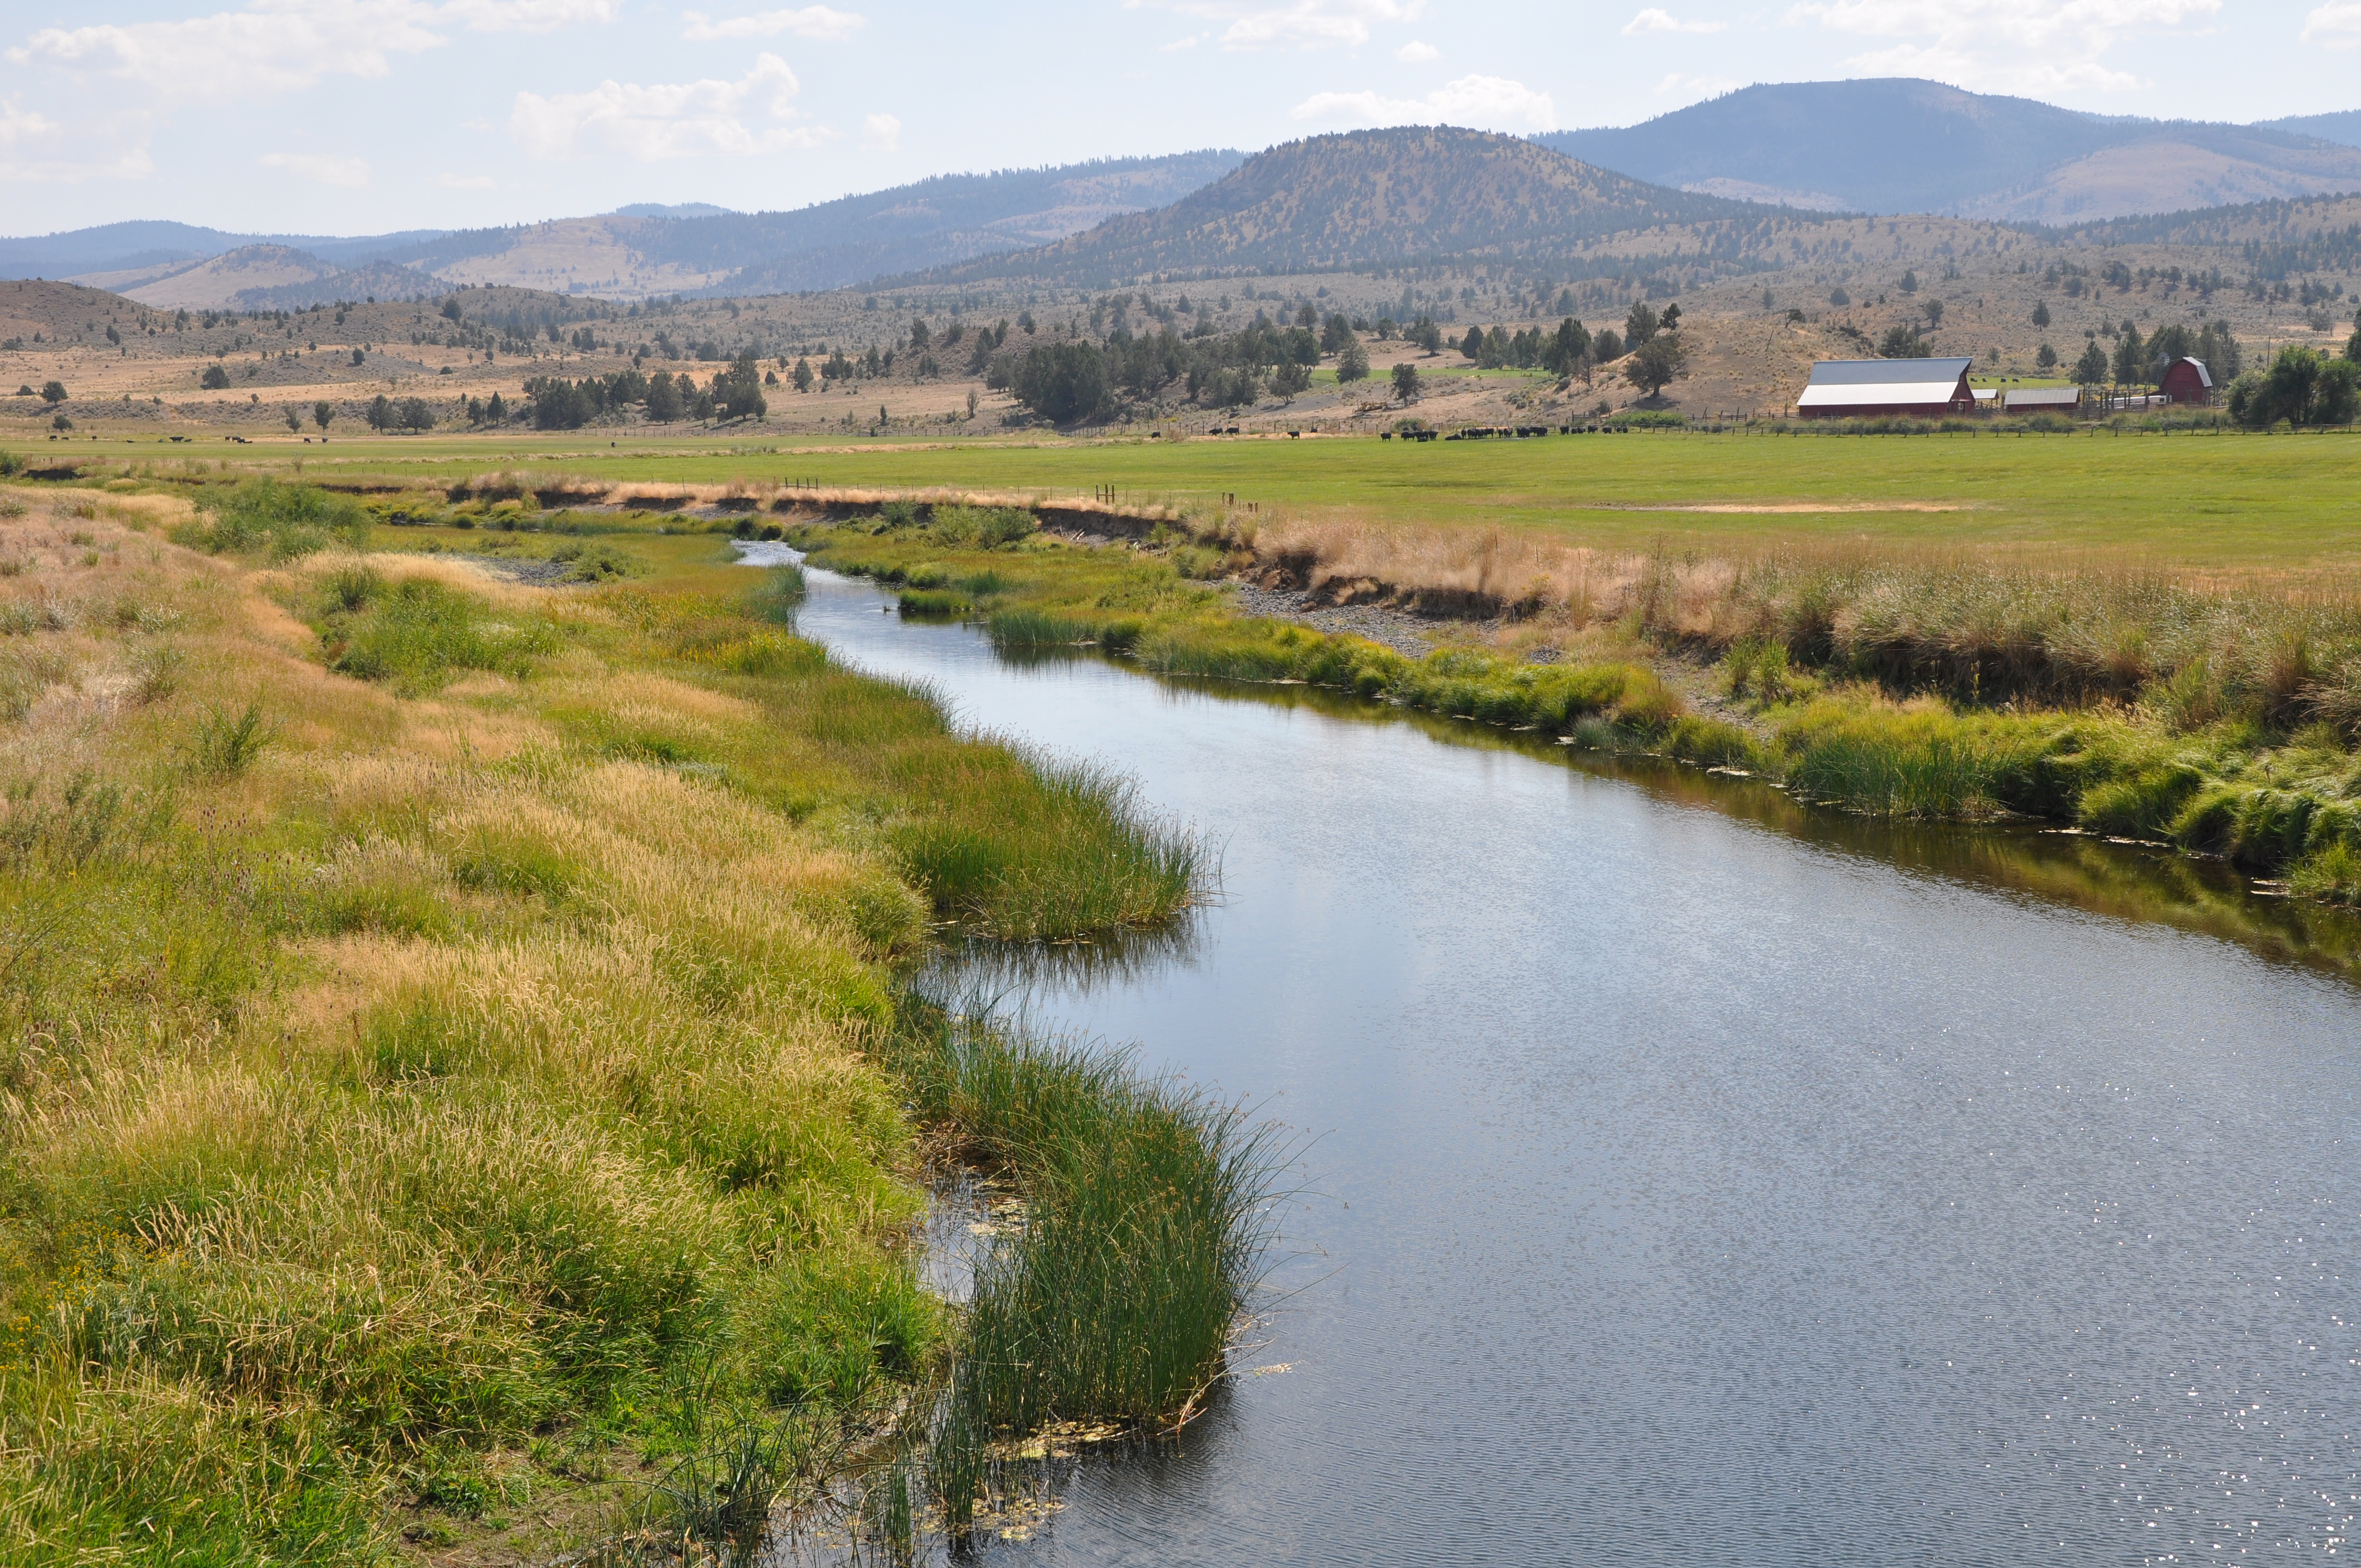 File:Crooked river near Post.jpg - Wikimedia Commons